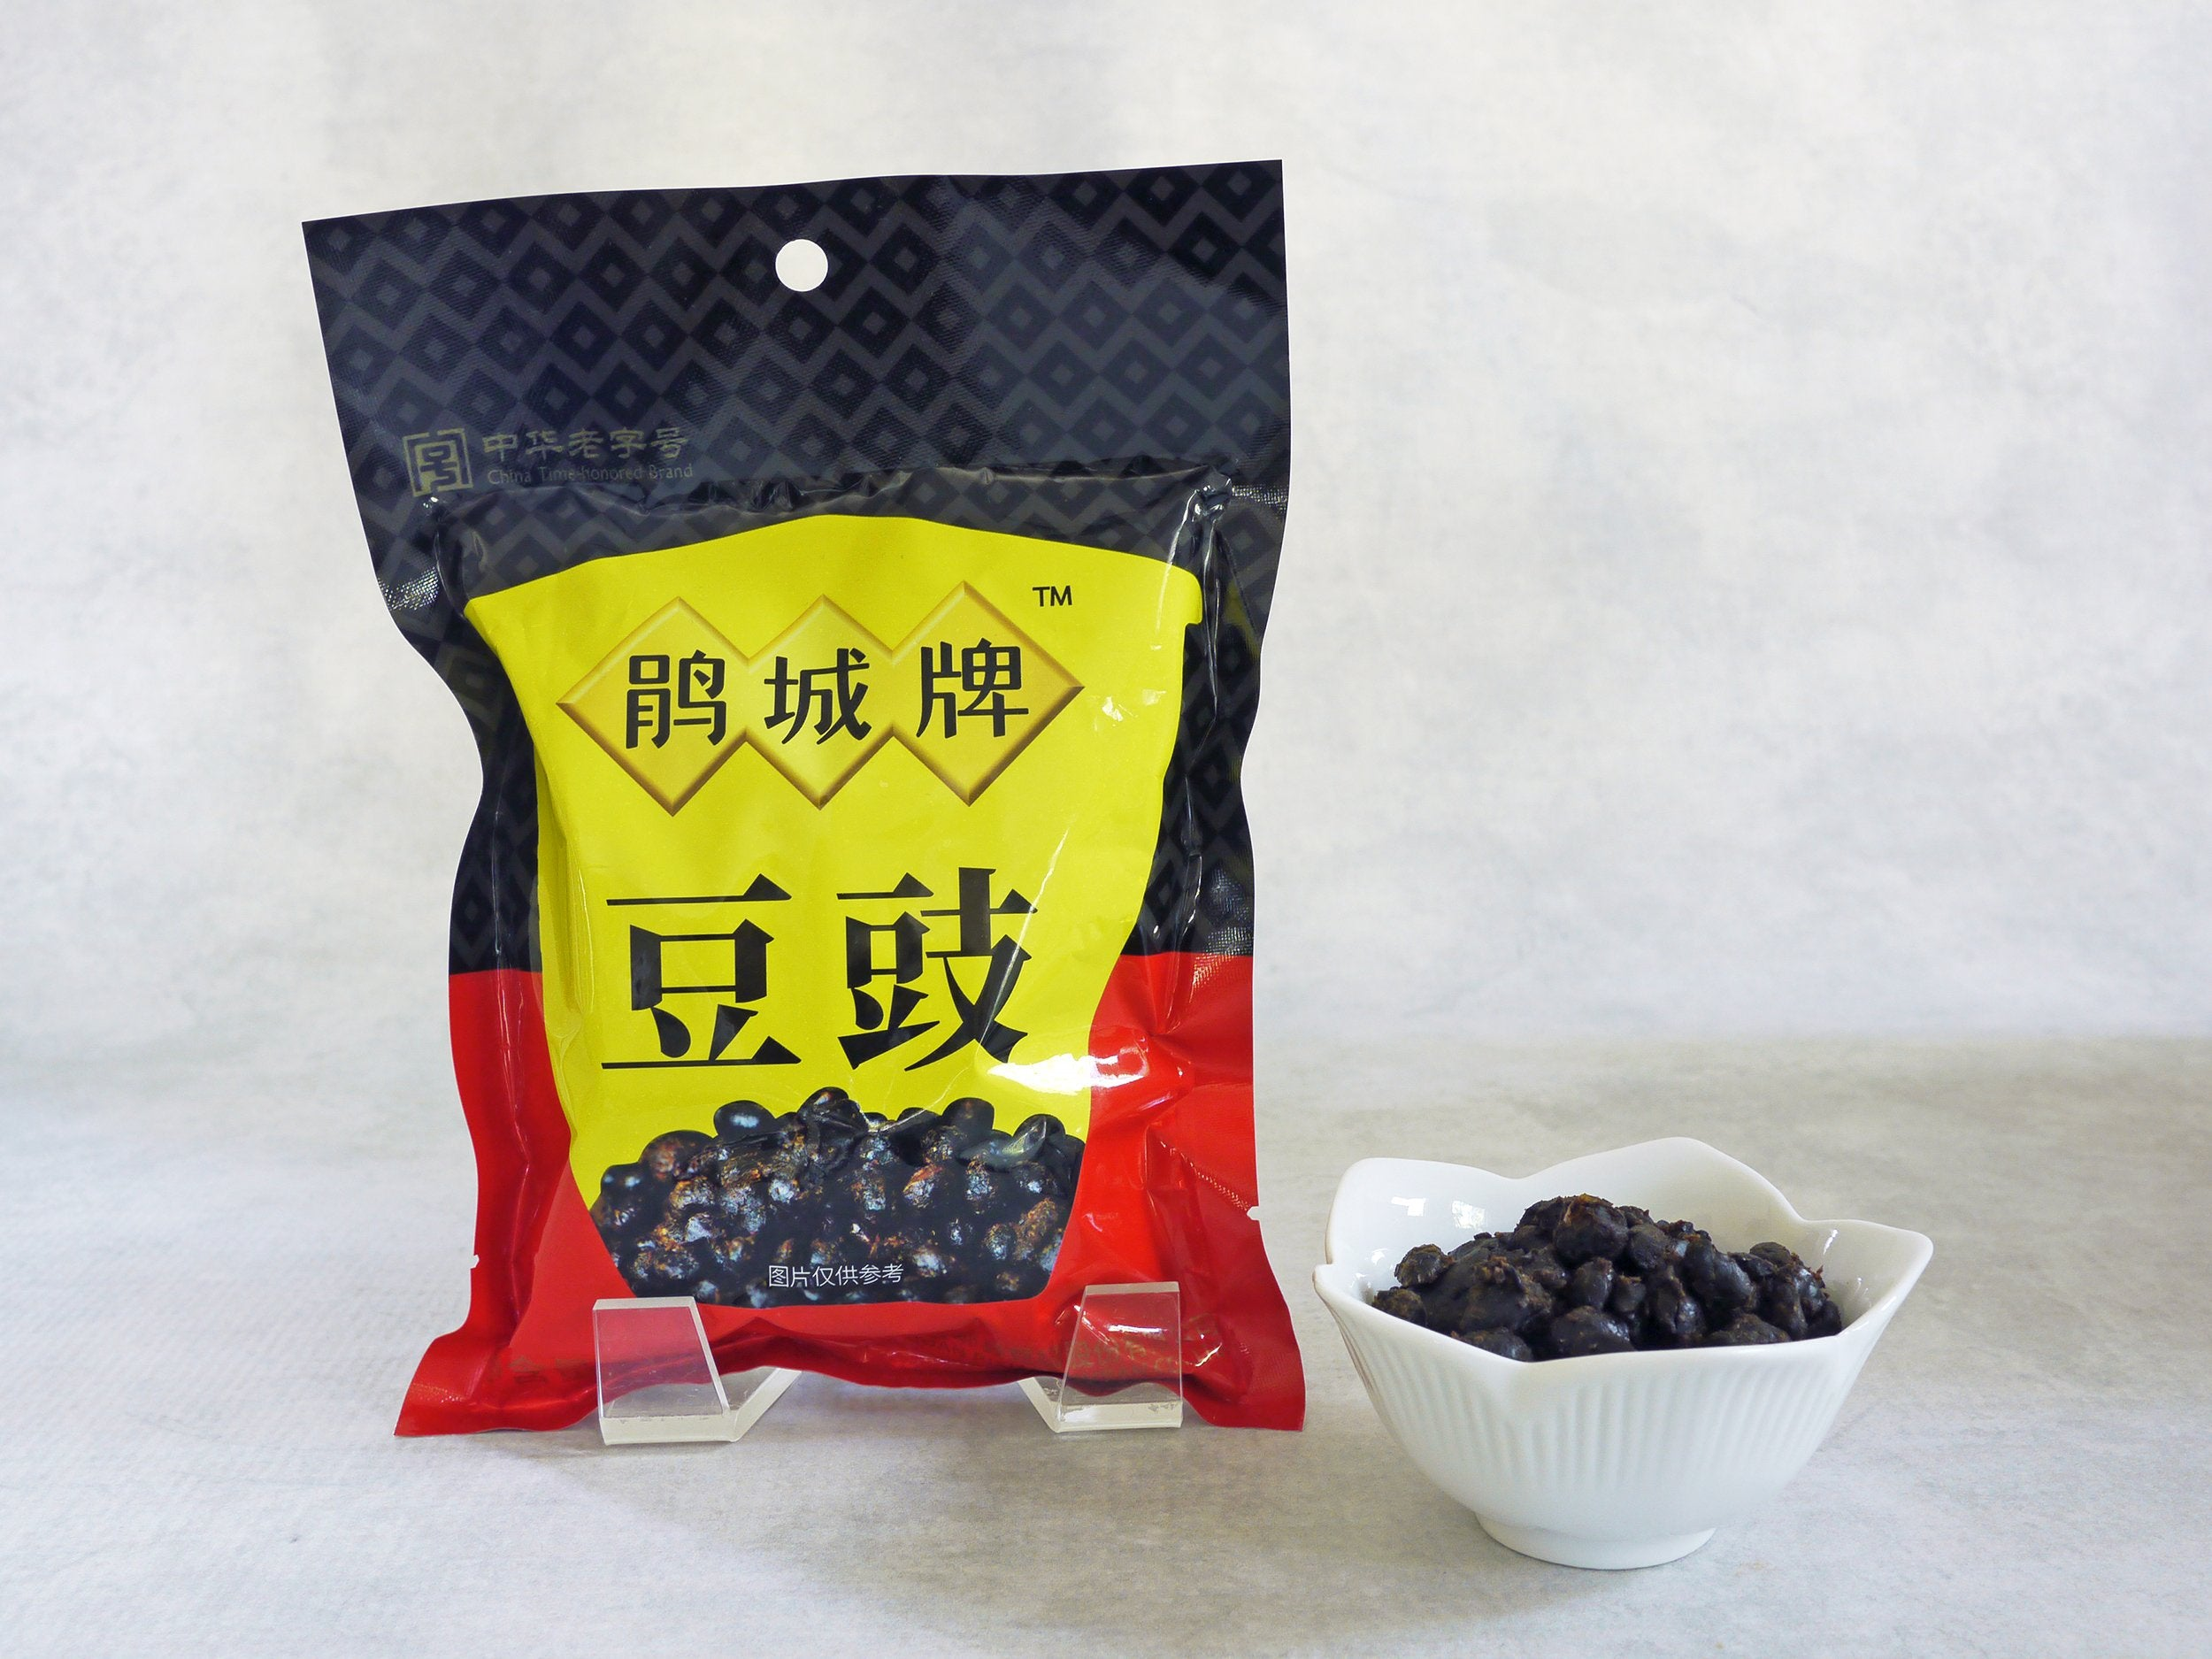 Sichuan Fermented Black Beans (Preserved Soybeans, Douchi)